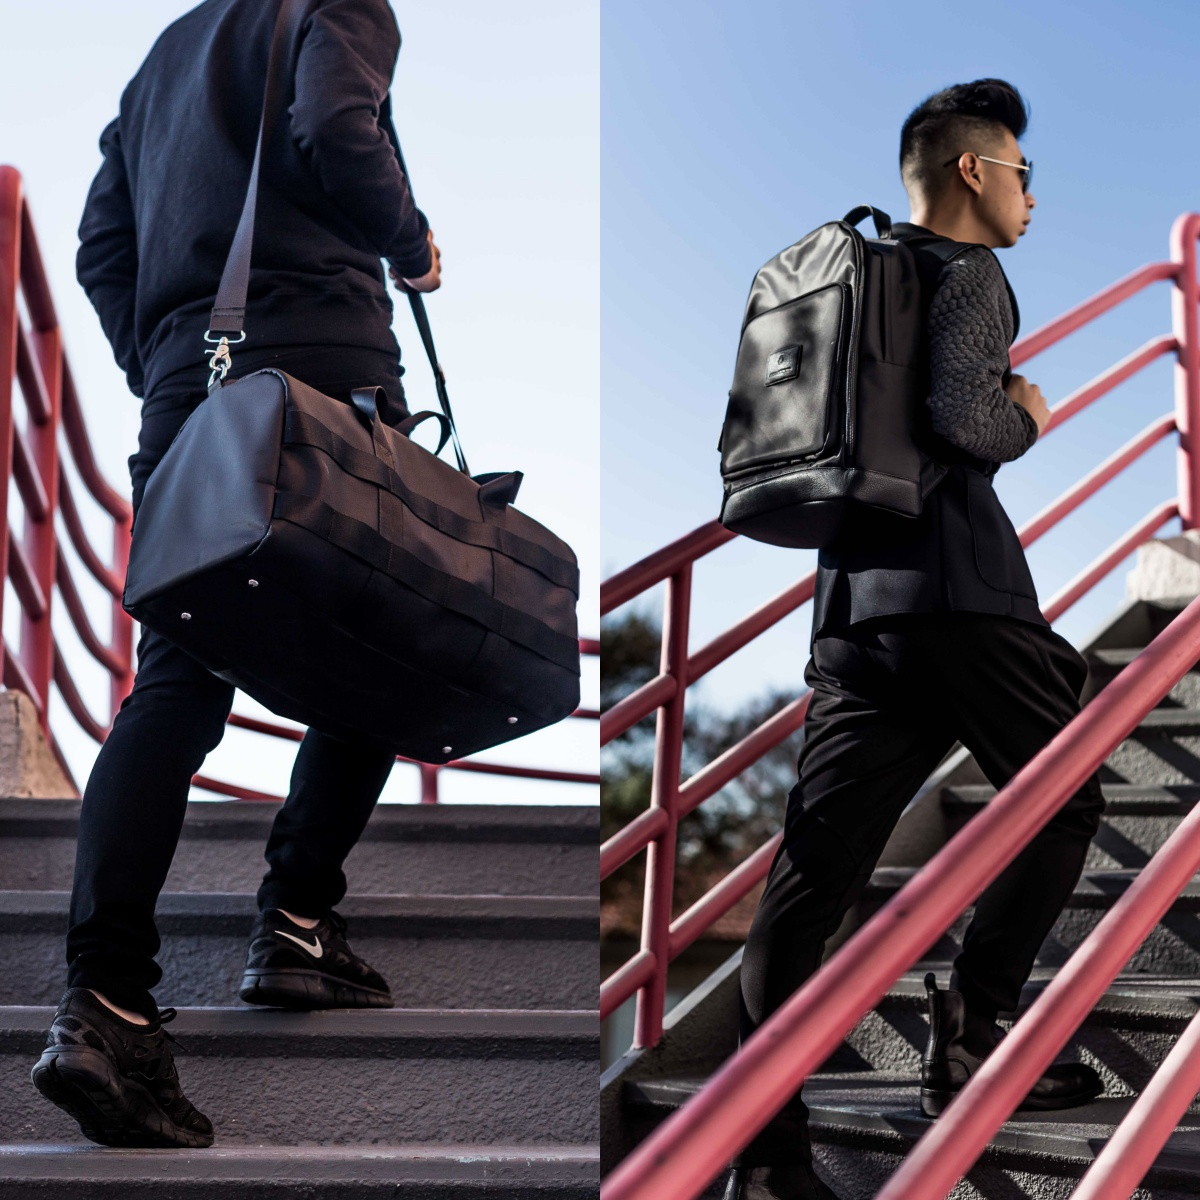 mybelonging-steele-and-borough-mens-bags-collage.jpg